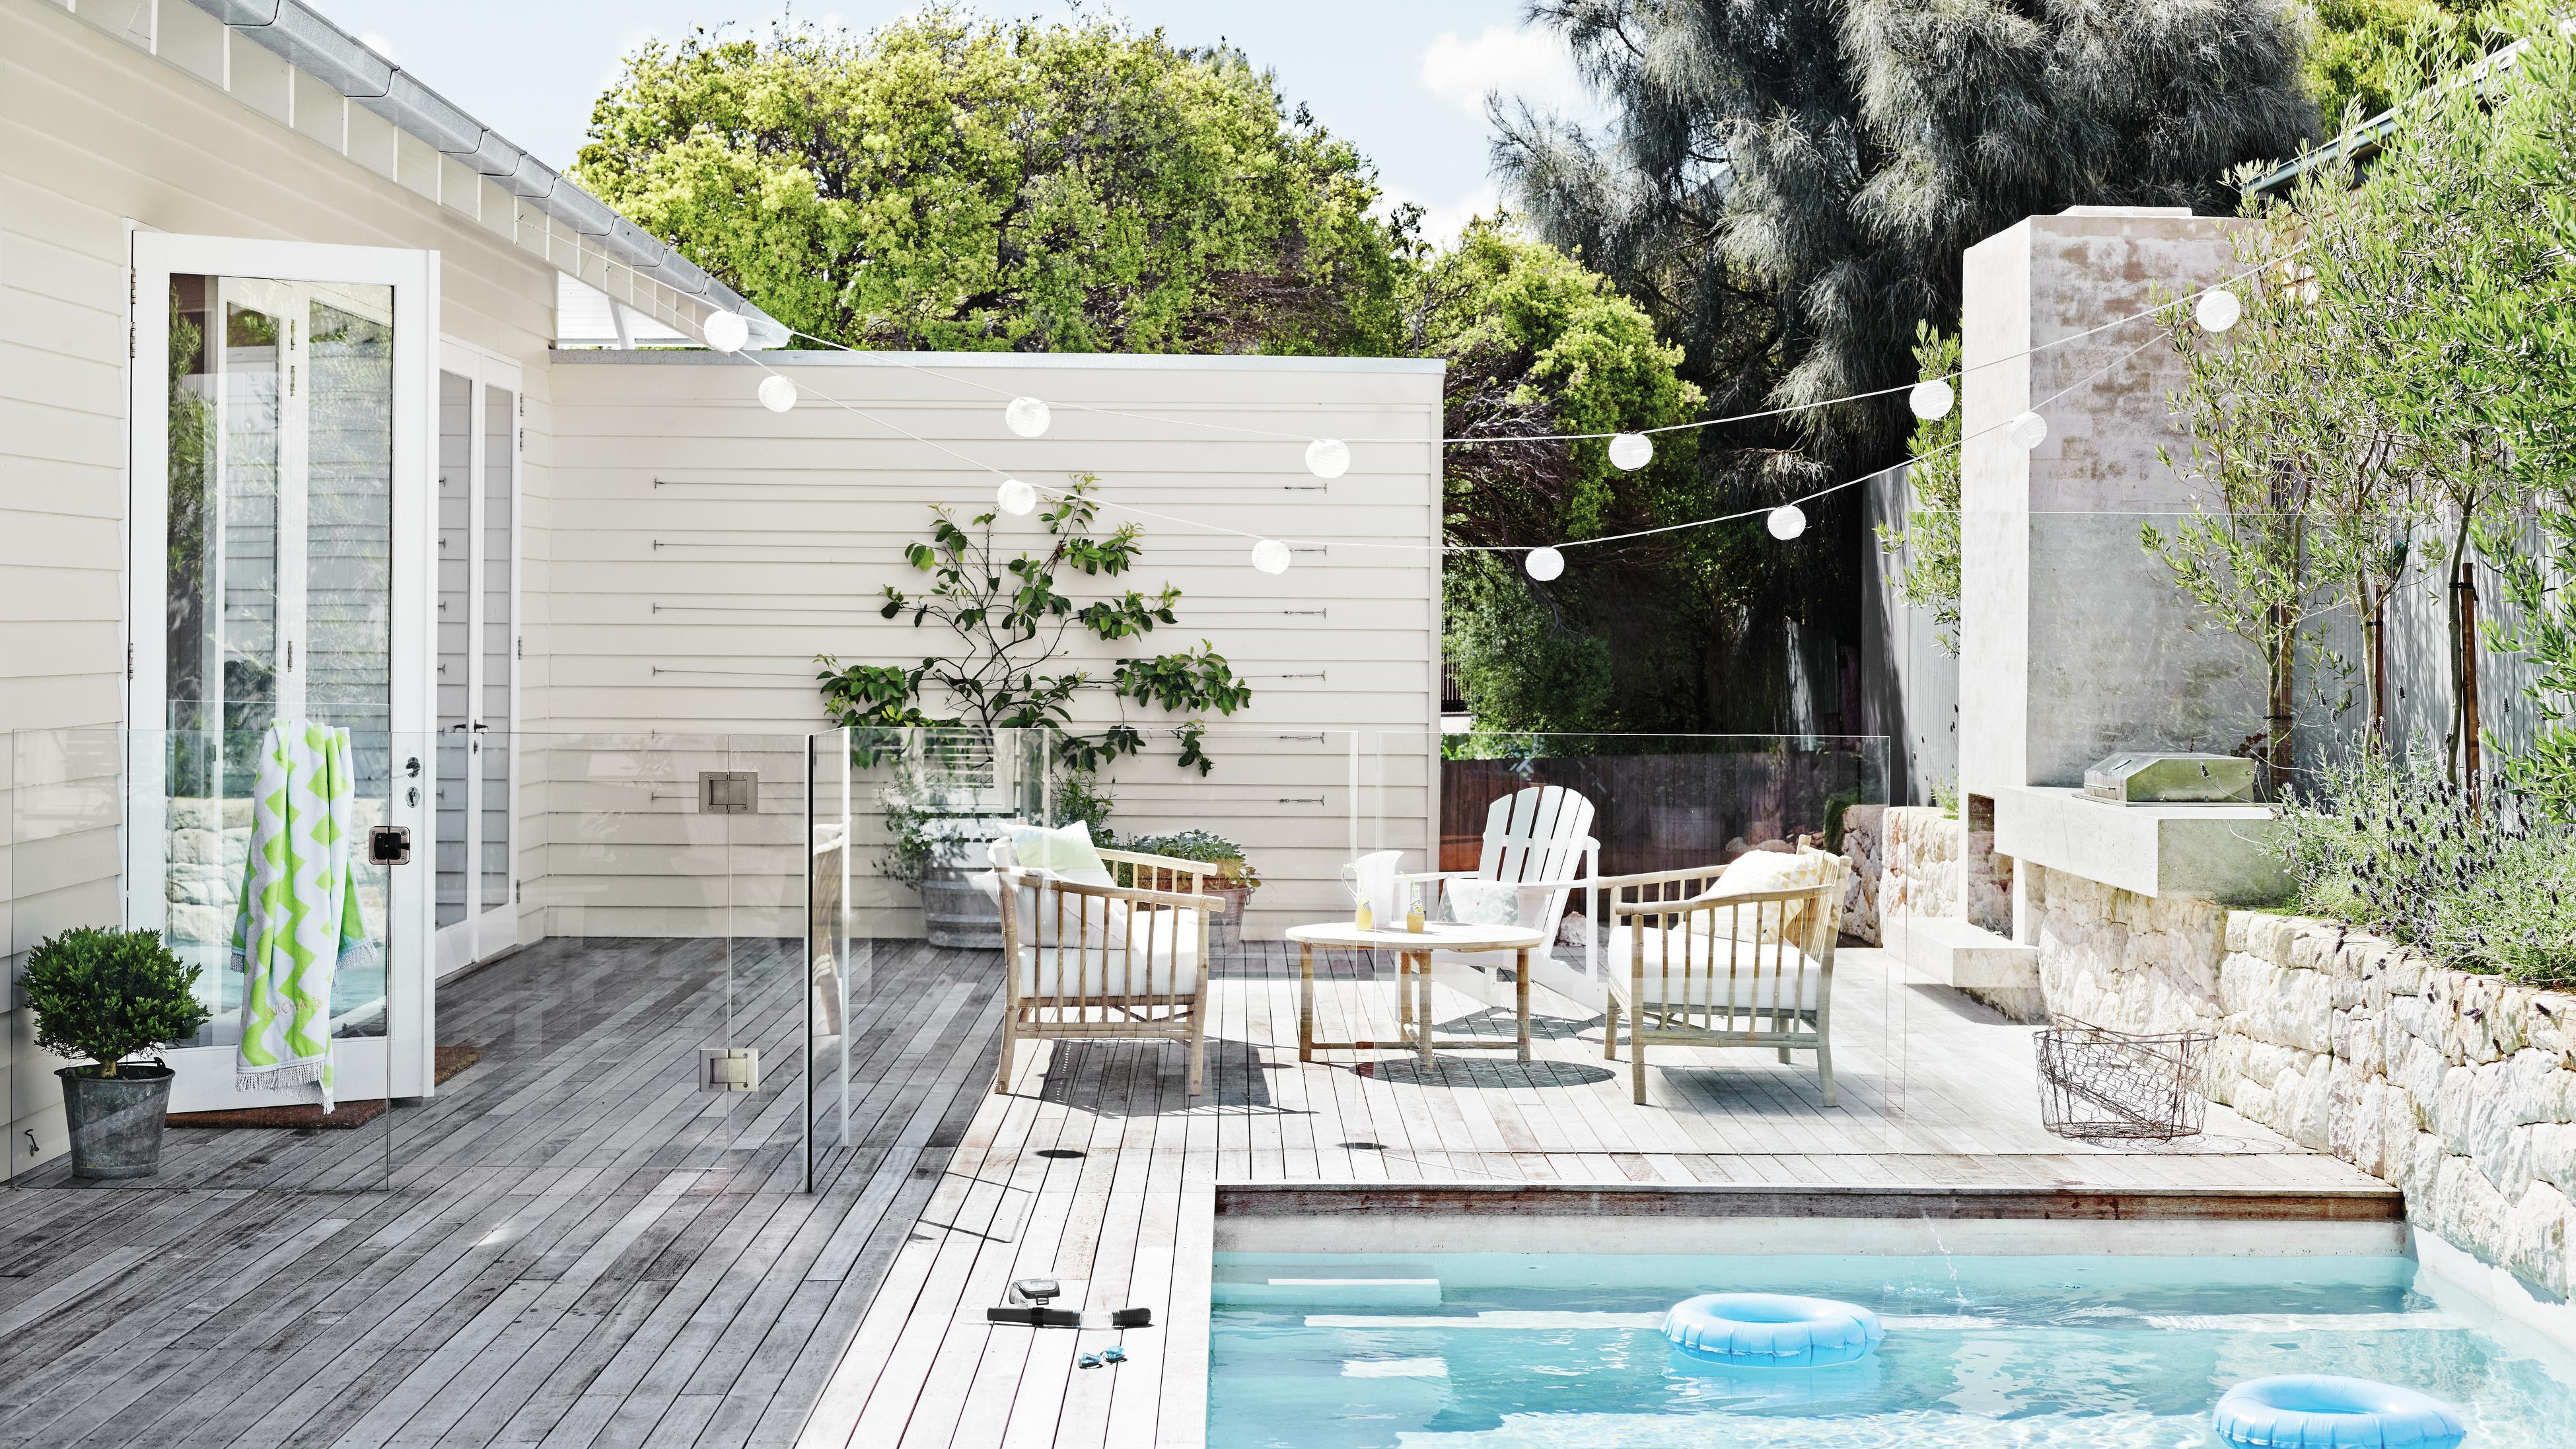 Outdoor pool area with decking, furniture, plants.